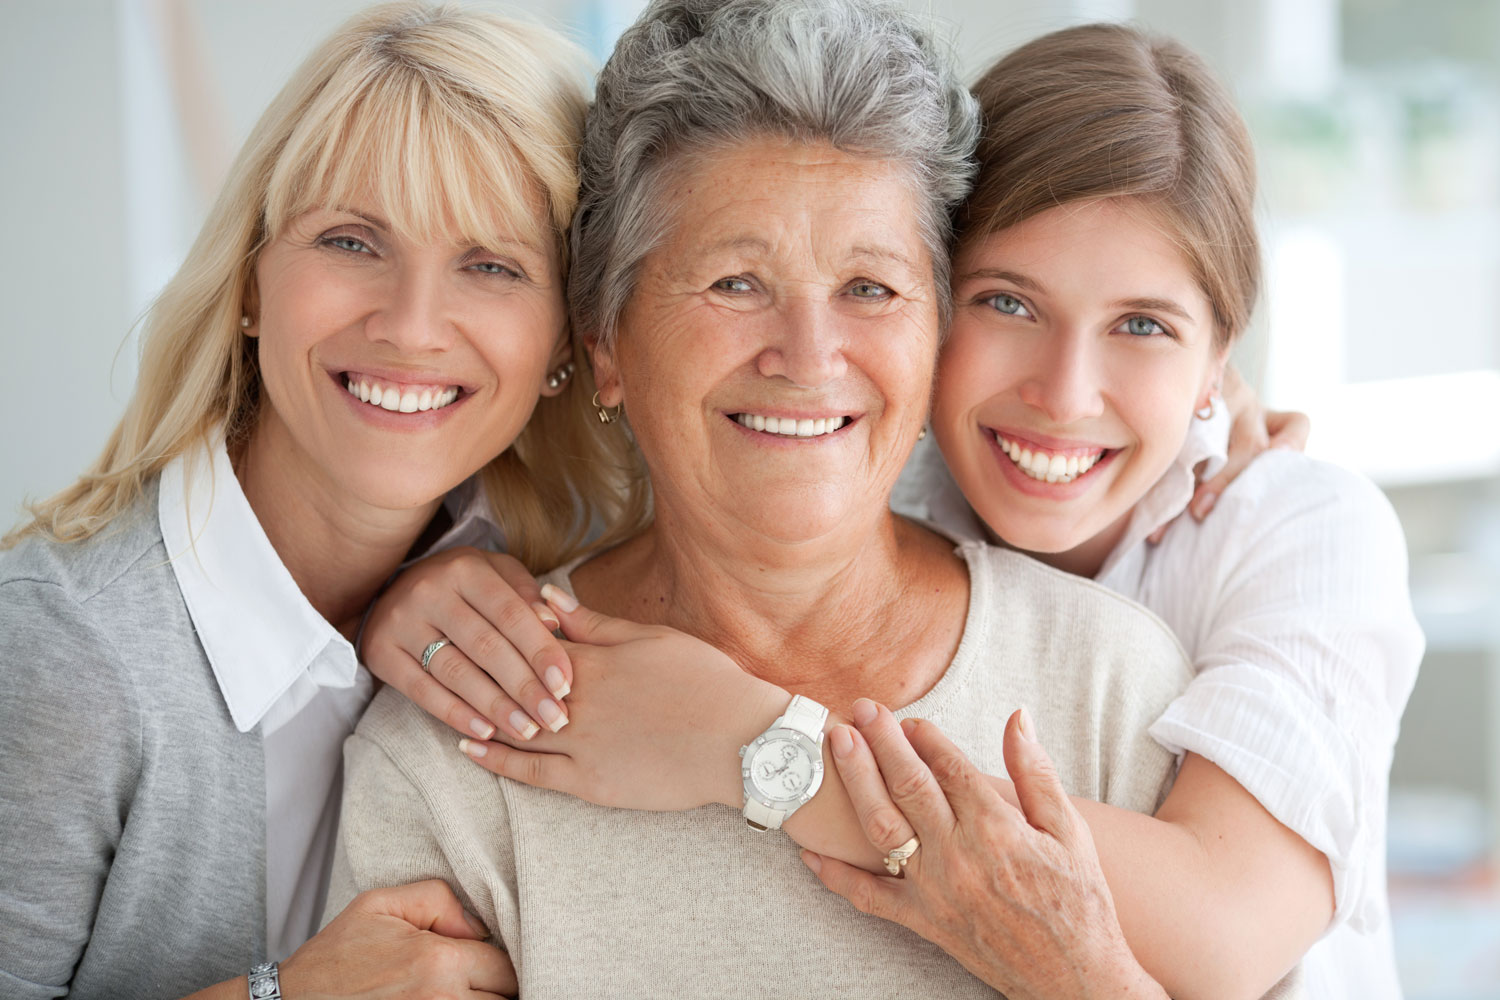 Complete obstetrics and gynecology services at LifeSprings Women's Healthcare for women in all stages of life.